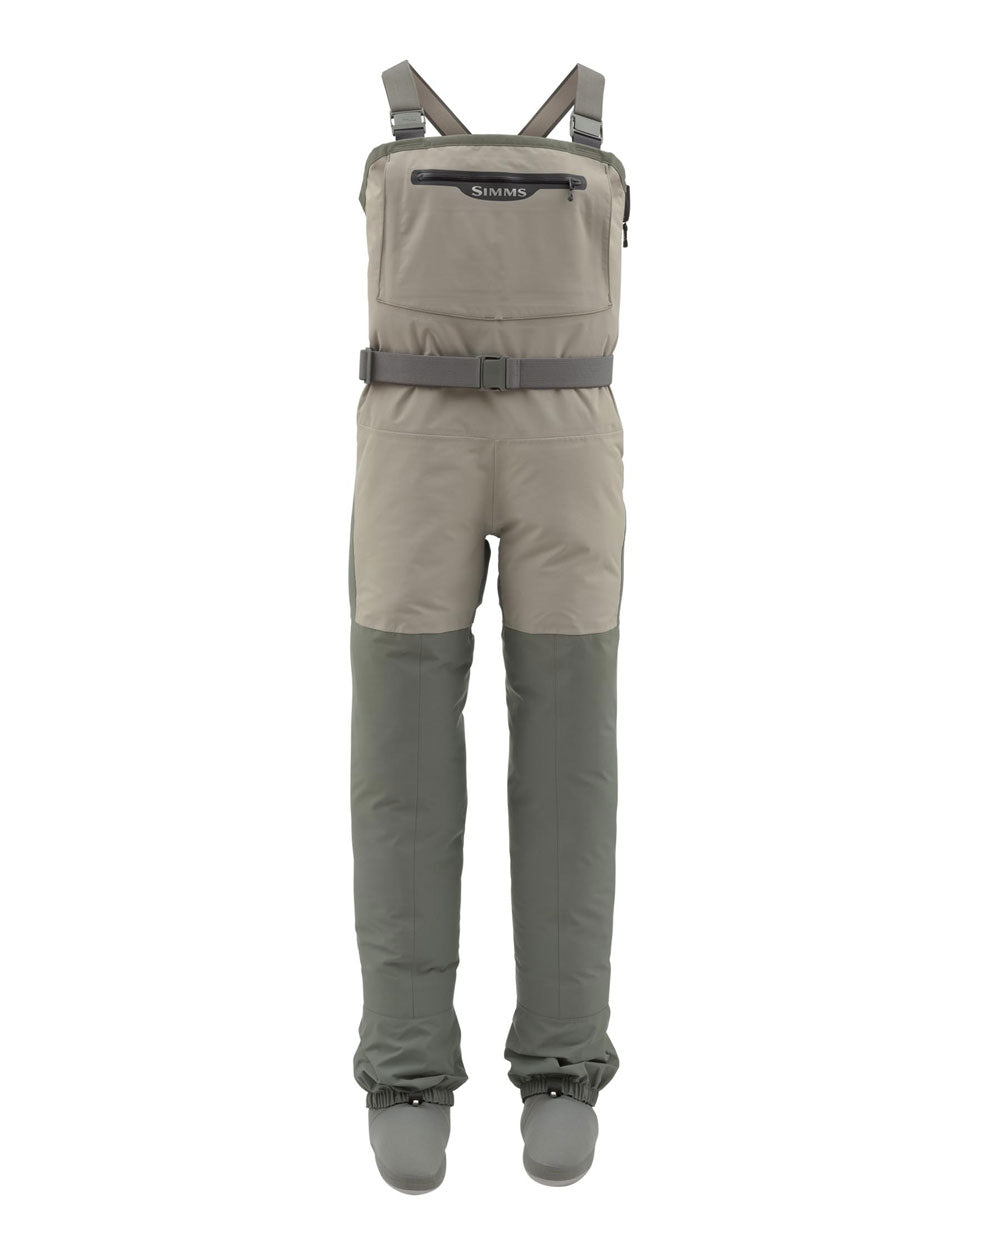 Simms Women's Freestone Z Waders - Stockingfoot